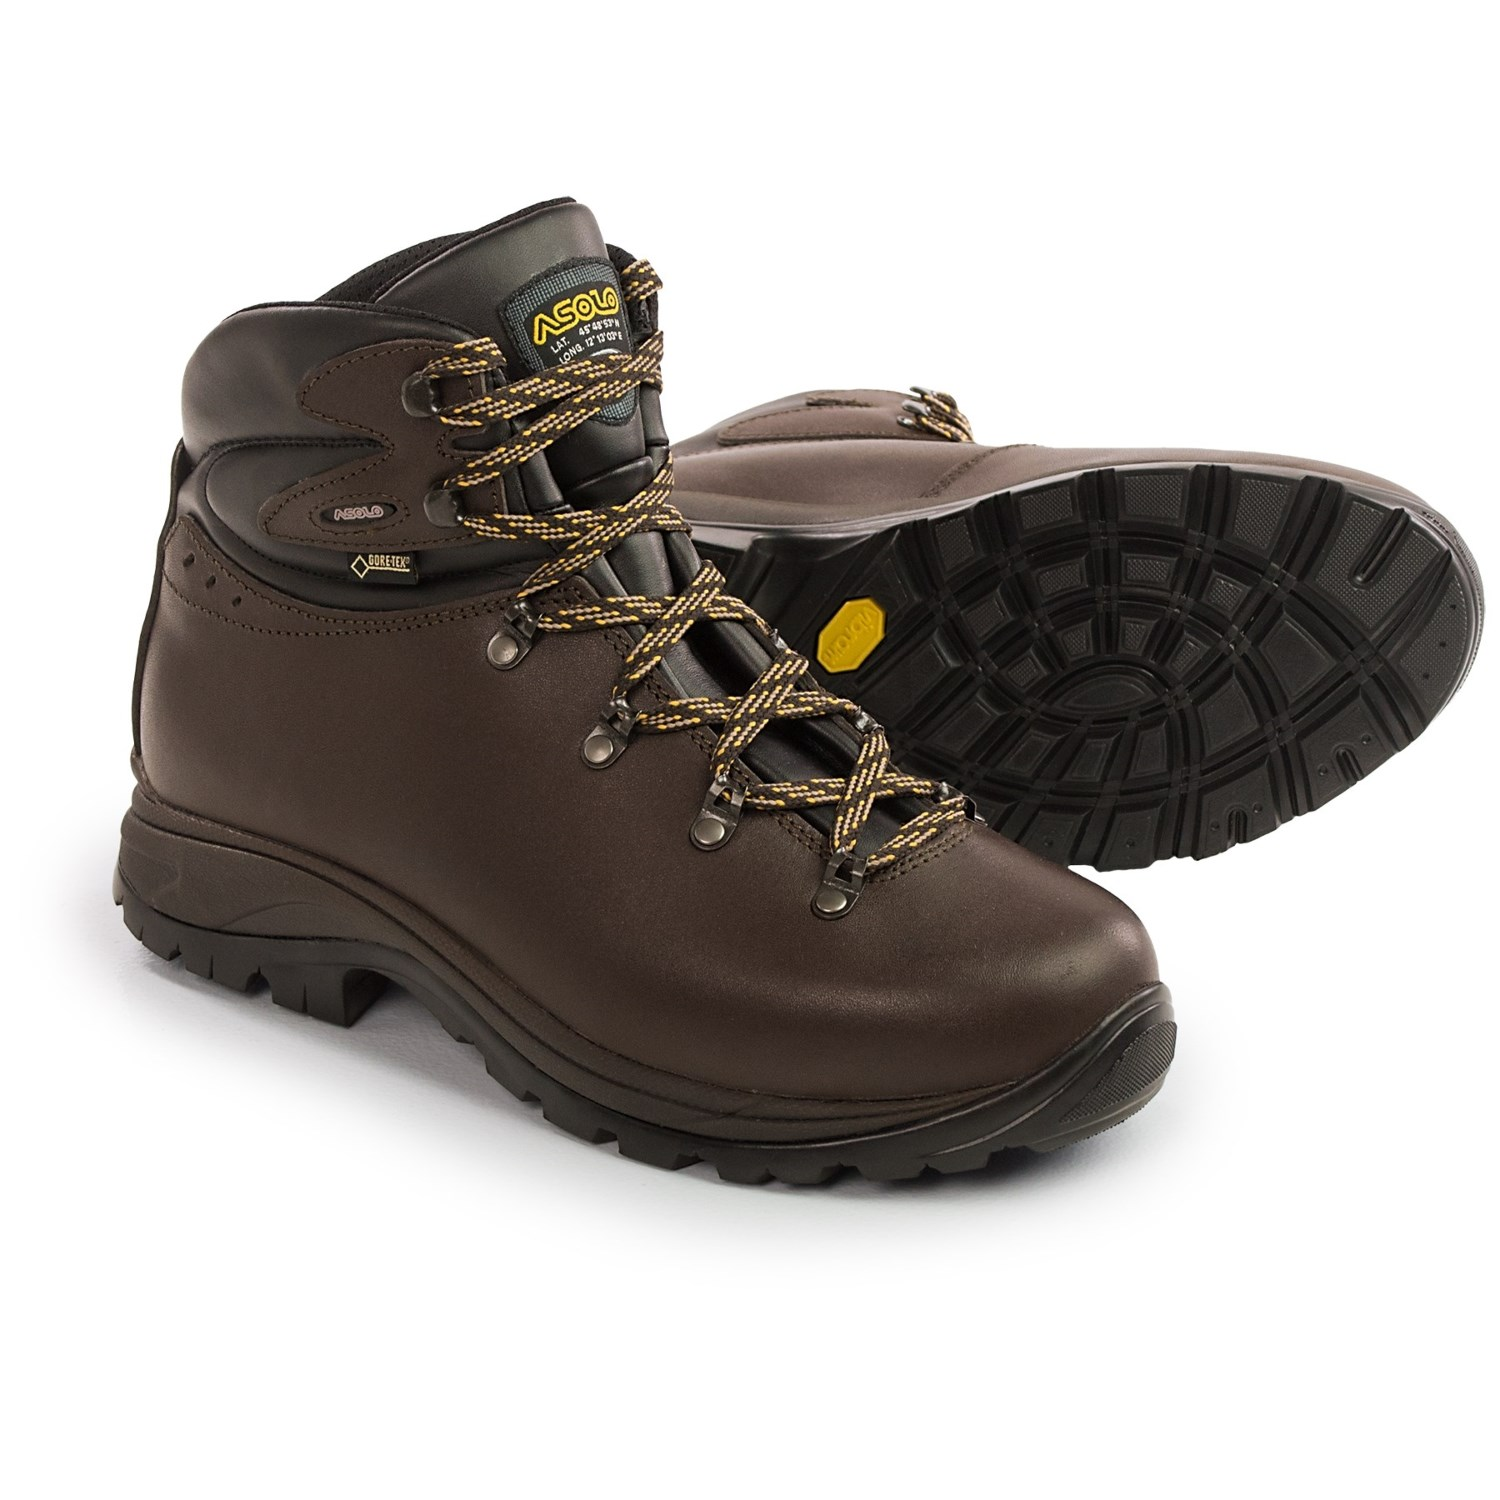 Men's Boots: Average savings of 48% at Sierra Trading Post